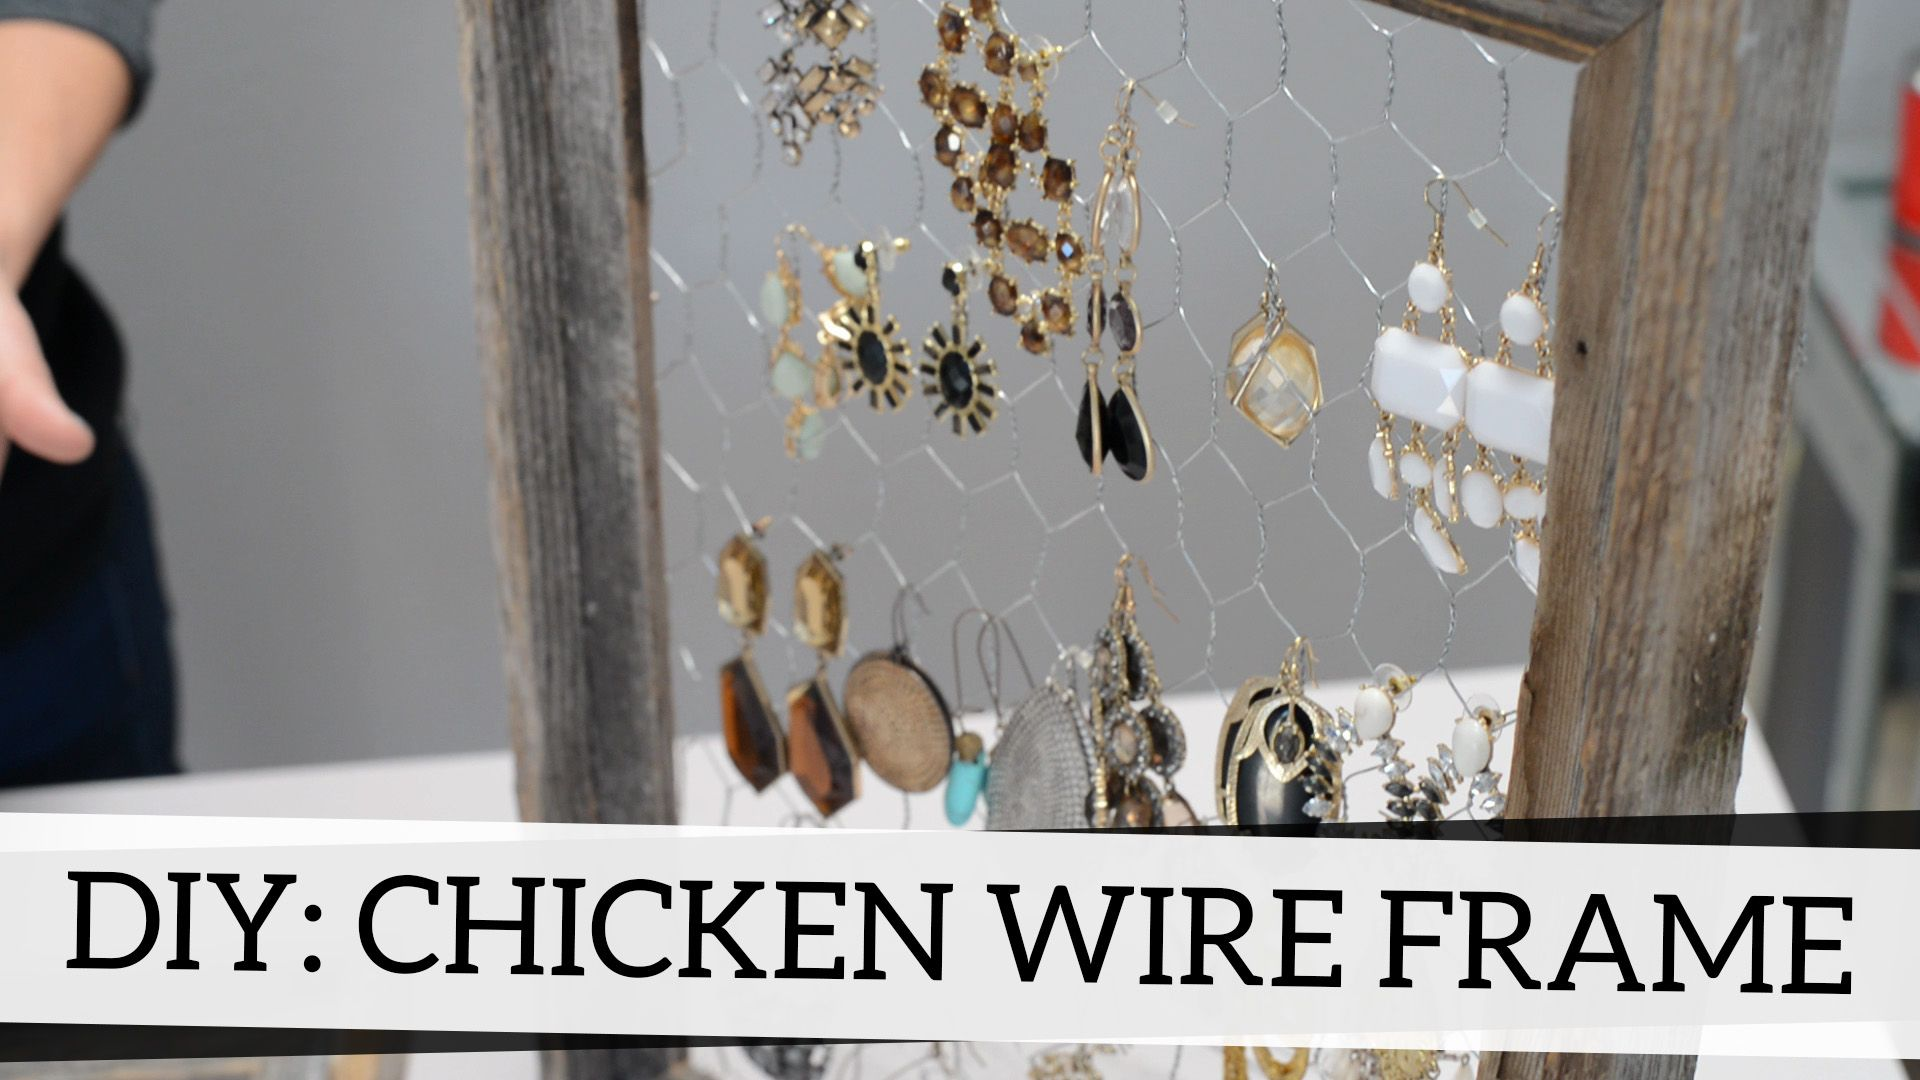 How to add chicken wire to a frame {easy DIY video!} #crafts ...